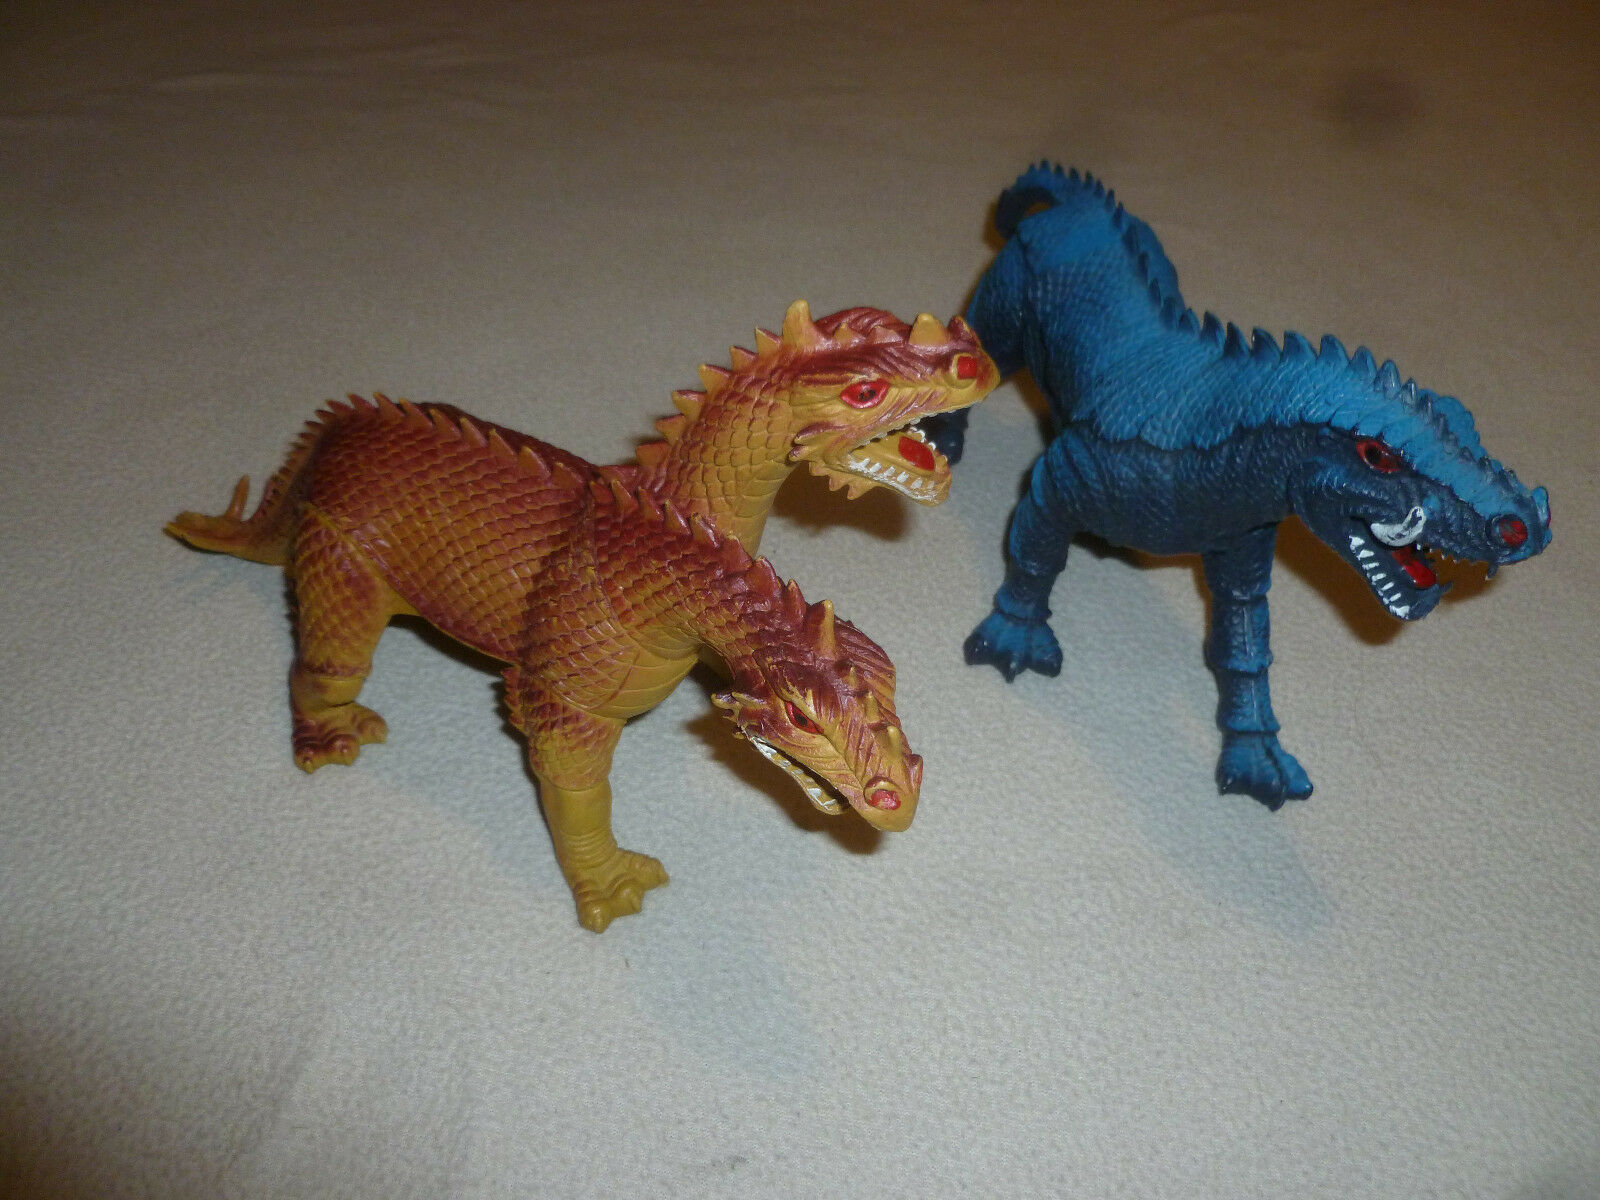 VINTAGE IMPERIAL FIGURE LOT DOUBLE HEADED DRAGON SABERTOOTH SERPENT blu 1980S